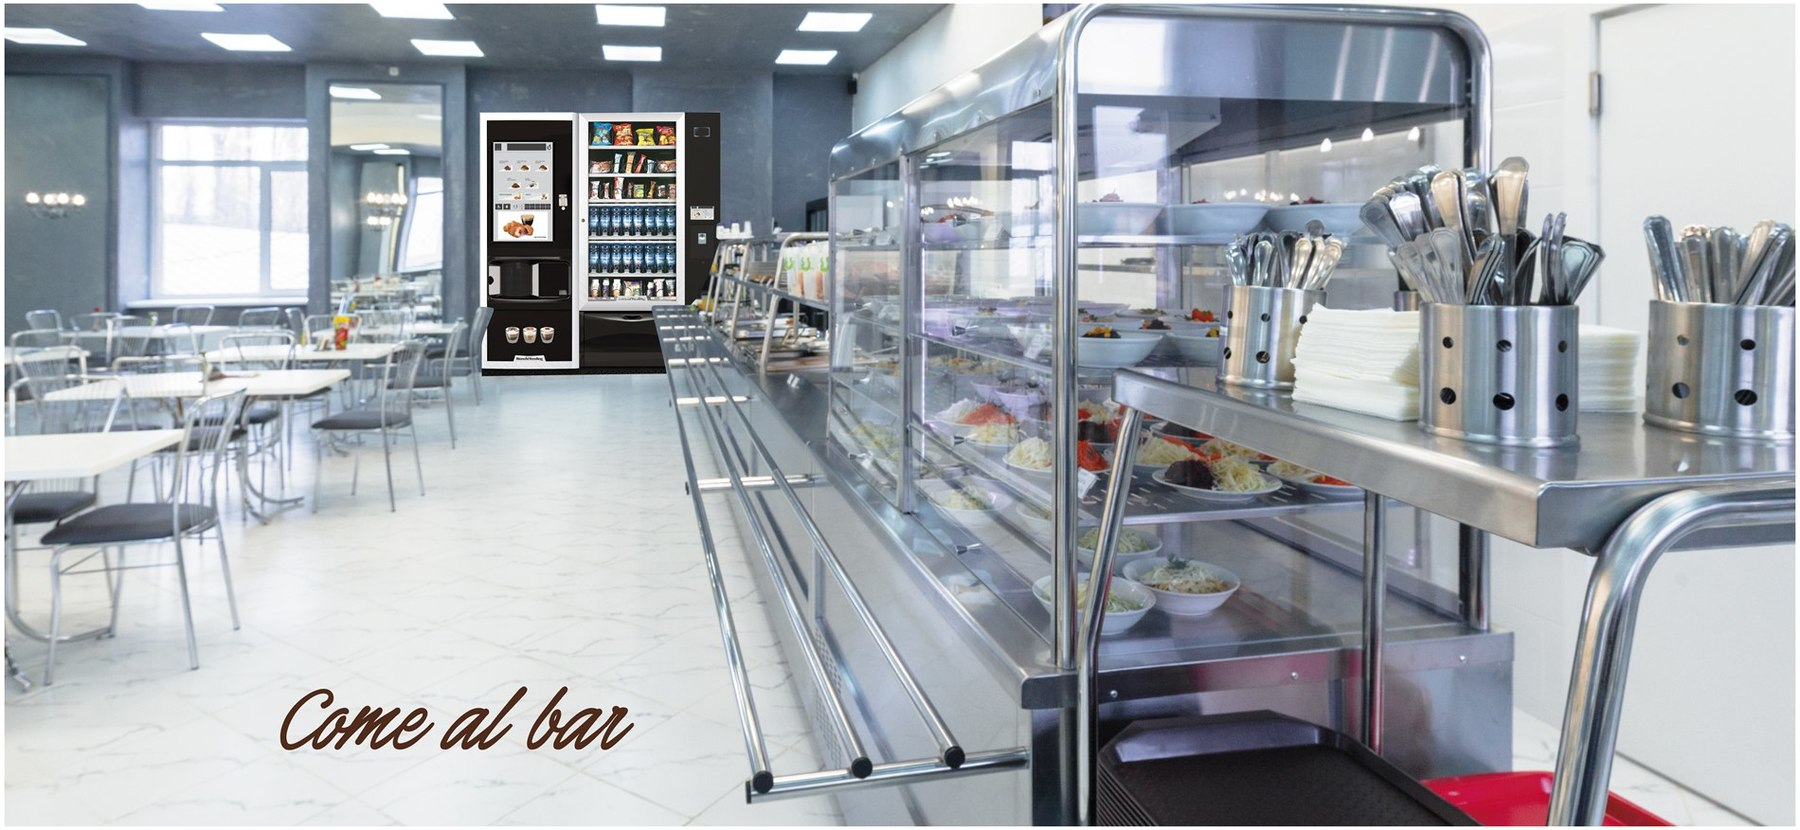 slide come al bar